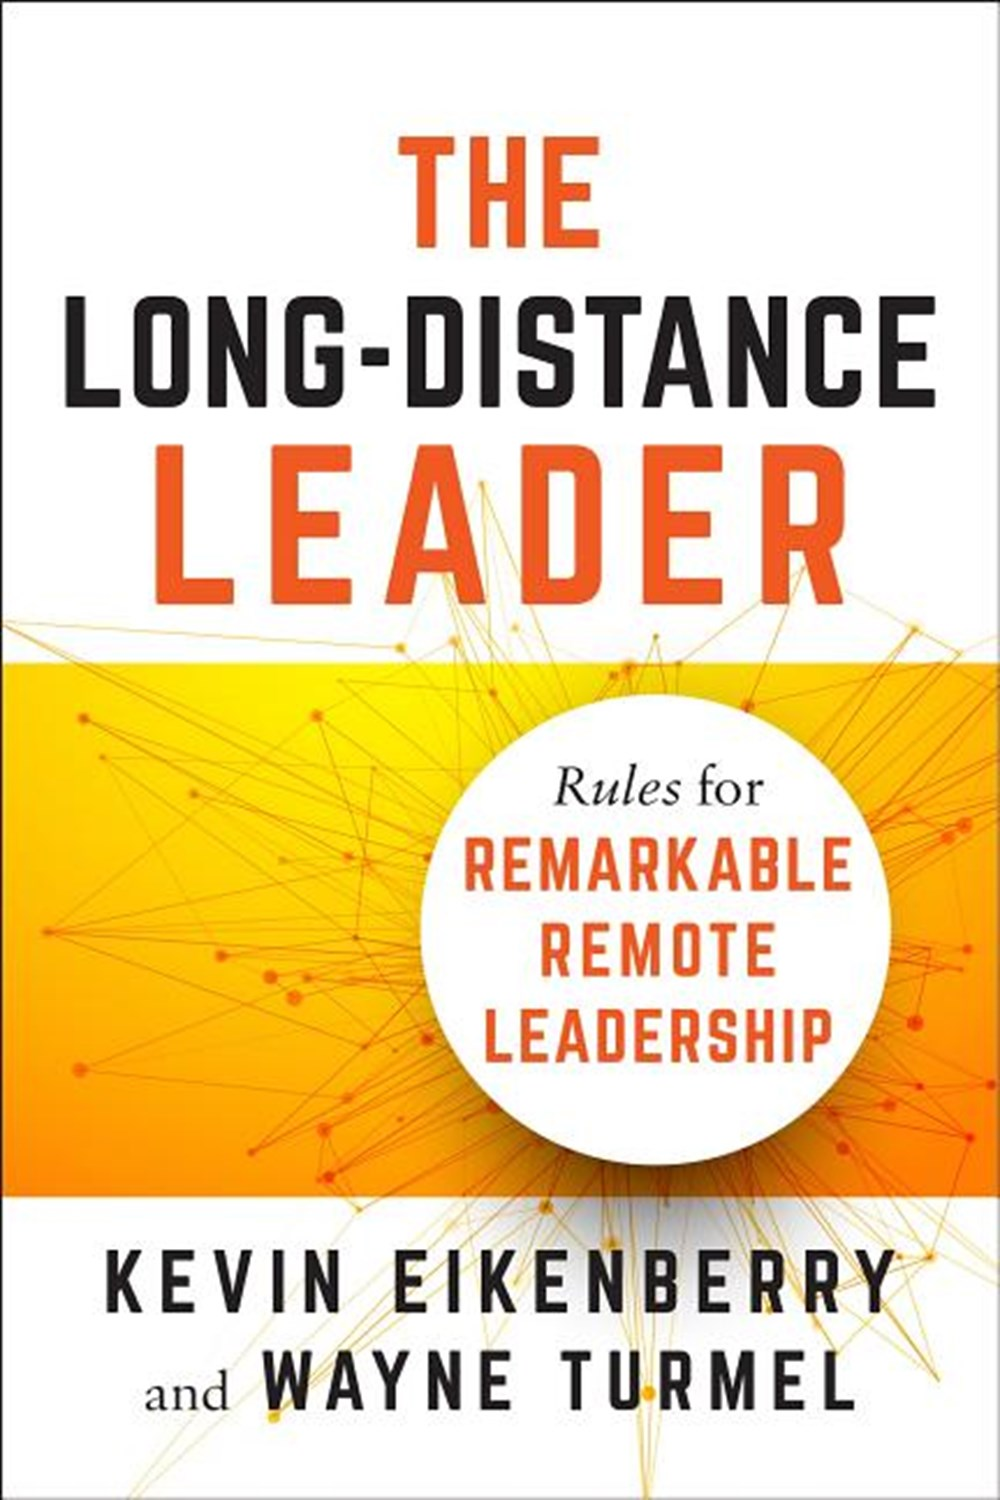 Long-Distance Leader Rules for Remarkable Remote Leadership